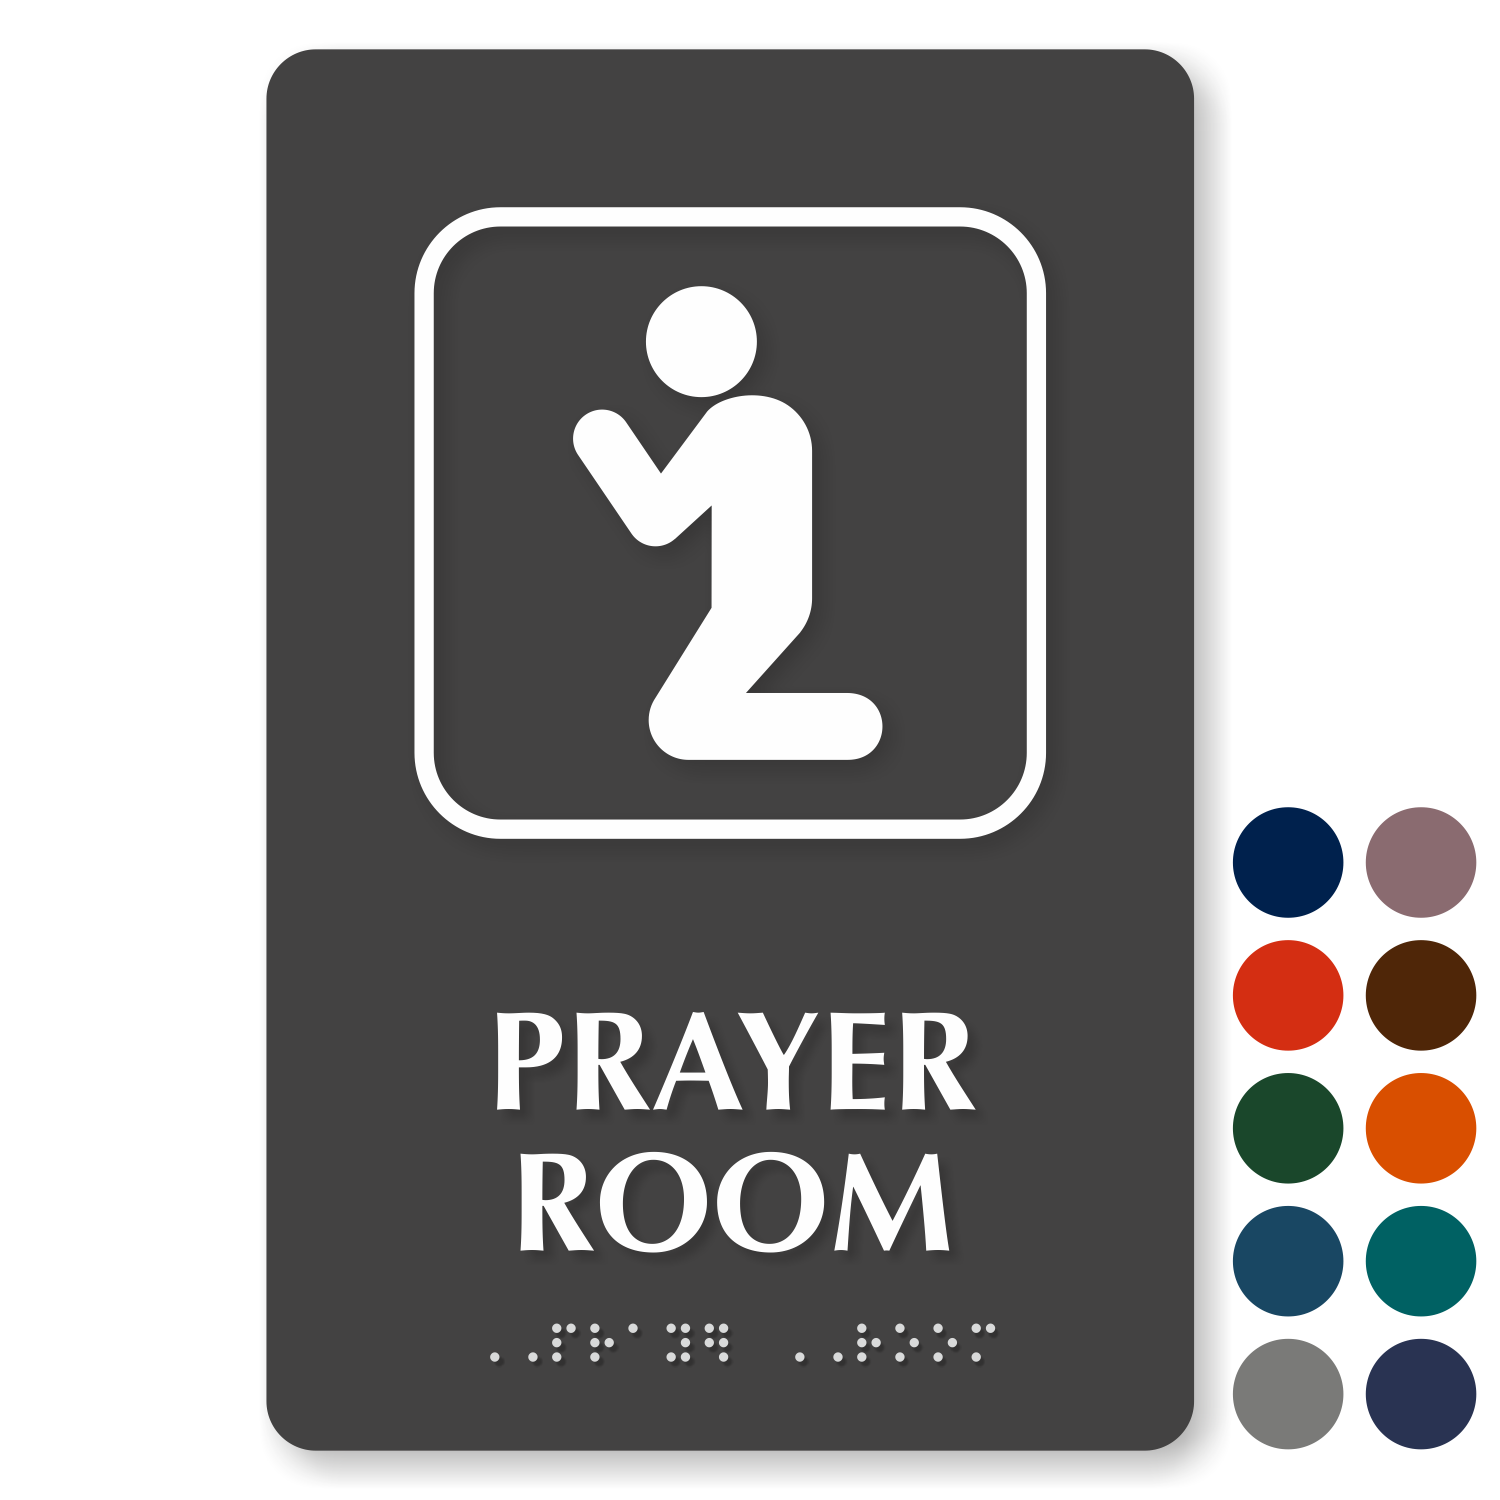 Prayer Room Signs - Church Office Door Signs, Quiet Please Signs